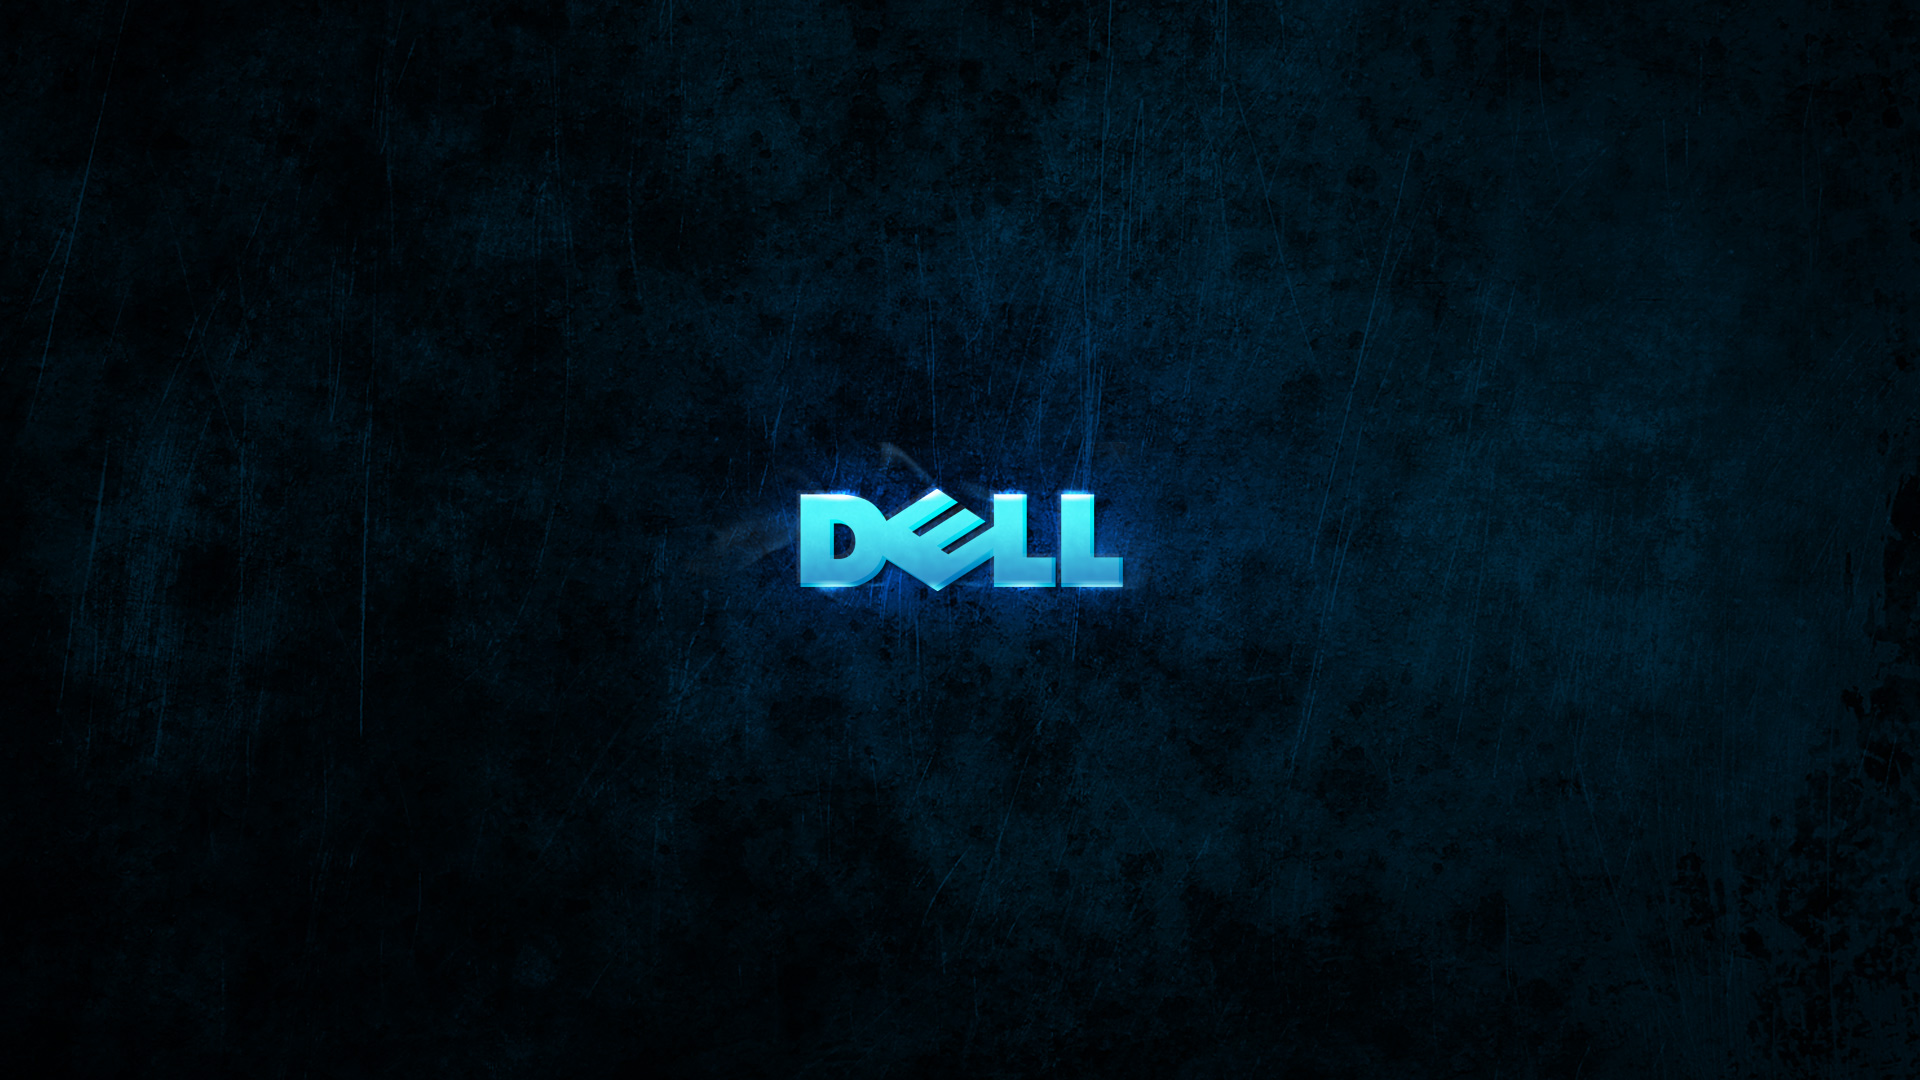 Hd Dell Backgrounds Dell Wallpaper Images For Windows: Dell Hd Wallpapers